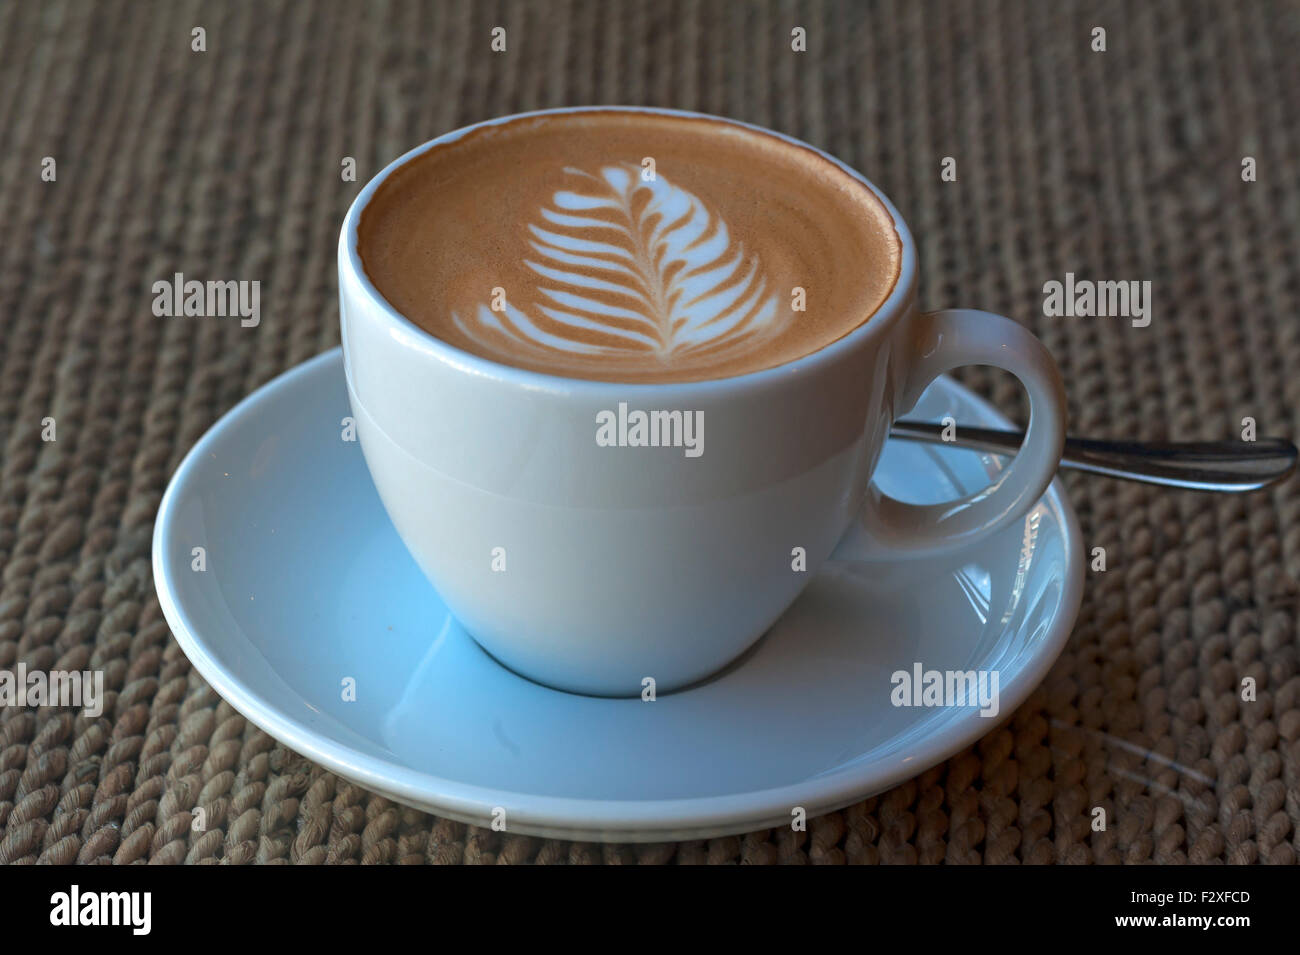 Cappuccino with milk froth, latte art, Rosetta, Germany - Stock Image